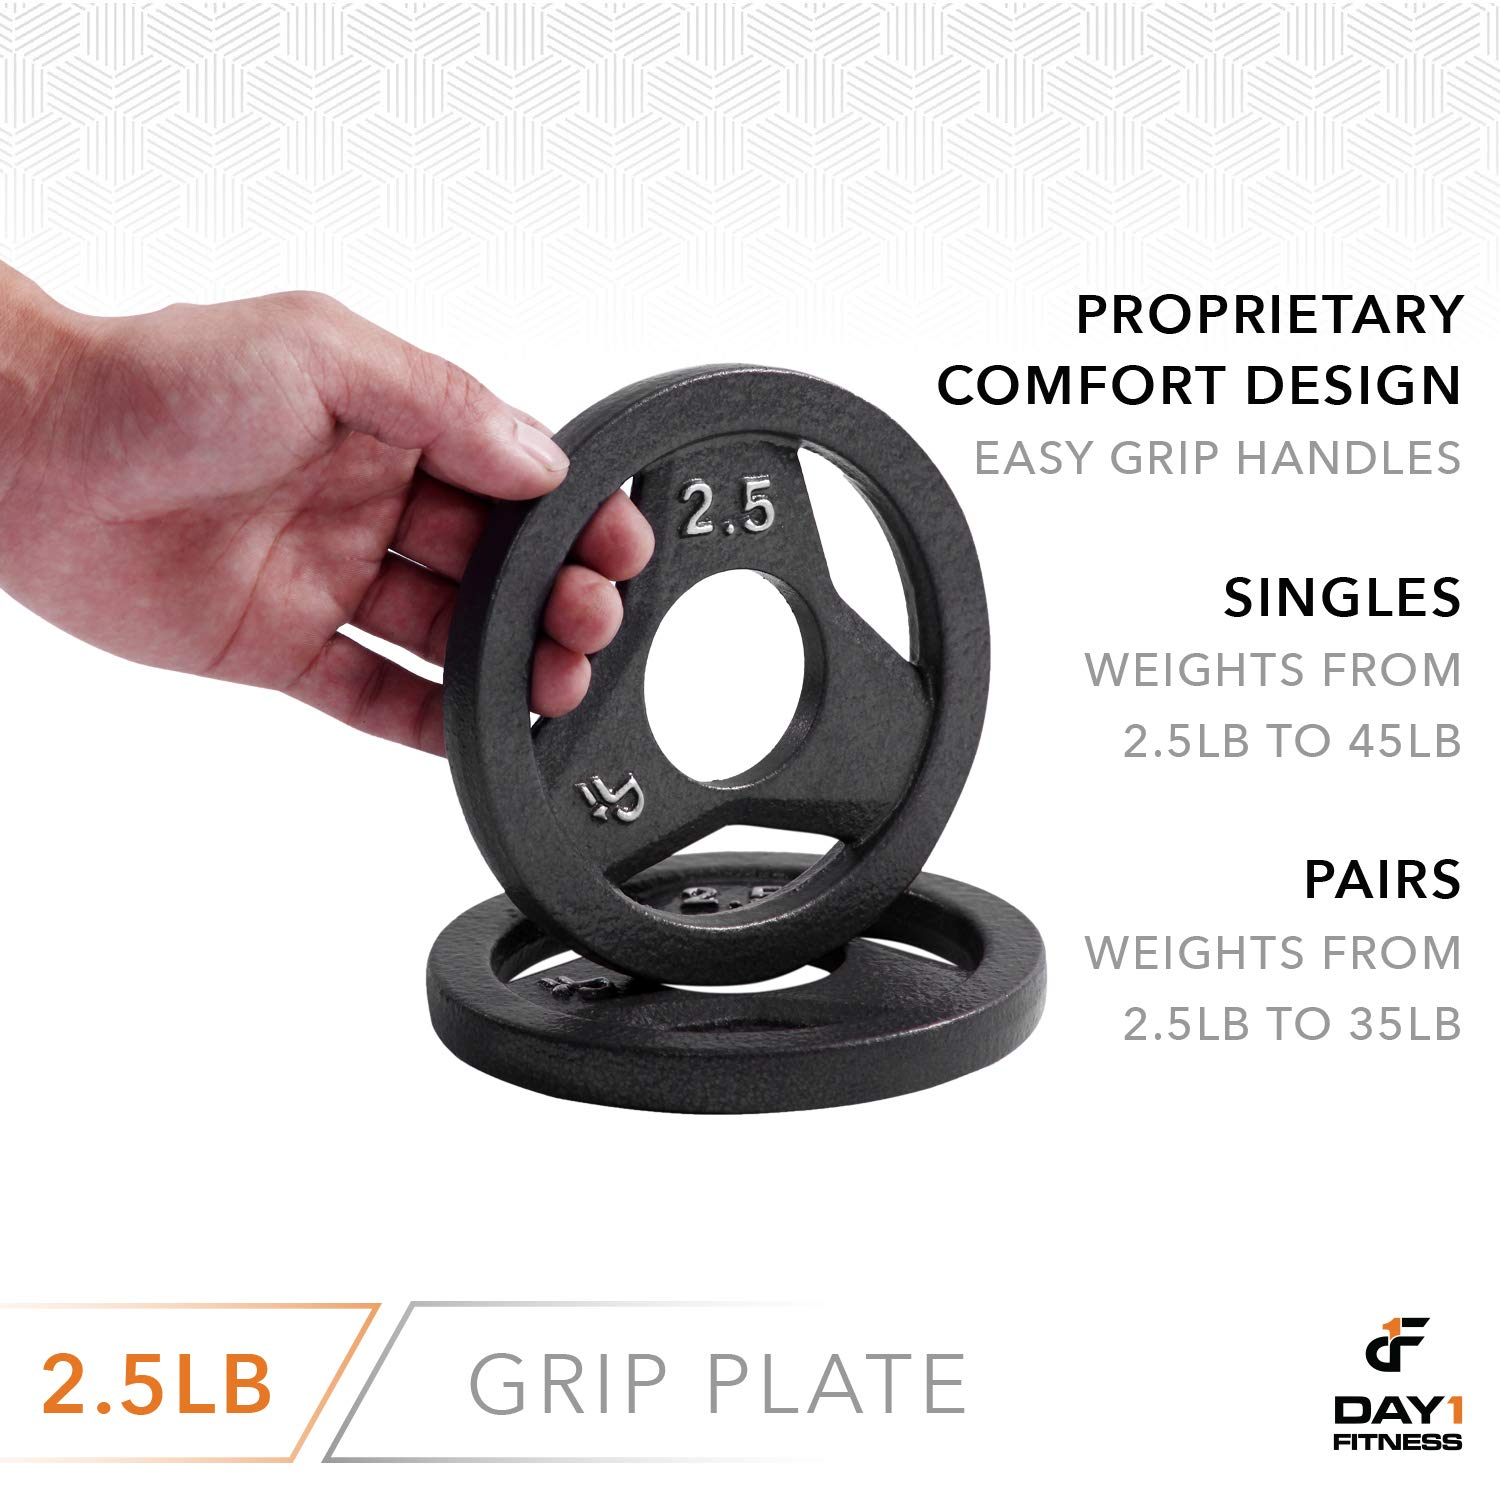 """Day 1 Fitness Cast Iron Olympic 2-Inch Grip Plate for Barbell, 2.5 Pound Single Plate Iron Grip Plates for Weightlifting, Crossfit - 2"""" Weight Plate for Bodybuilding by Day 1 Fitness (Image #5)"""